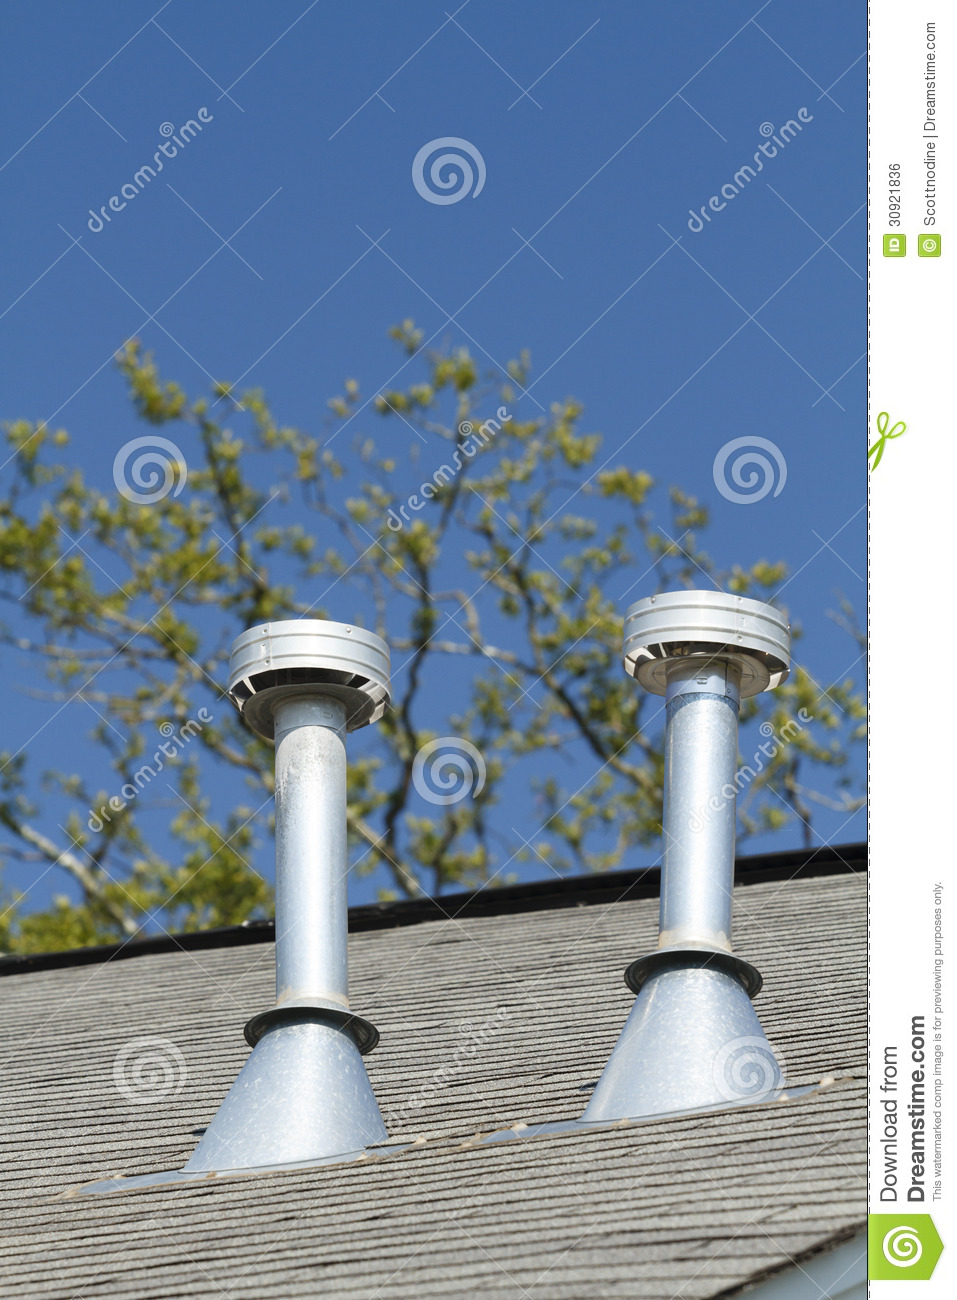 Two Residential Roof Exhaust Vents Royalty Free Stock